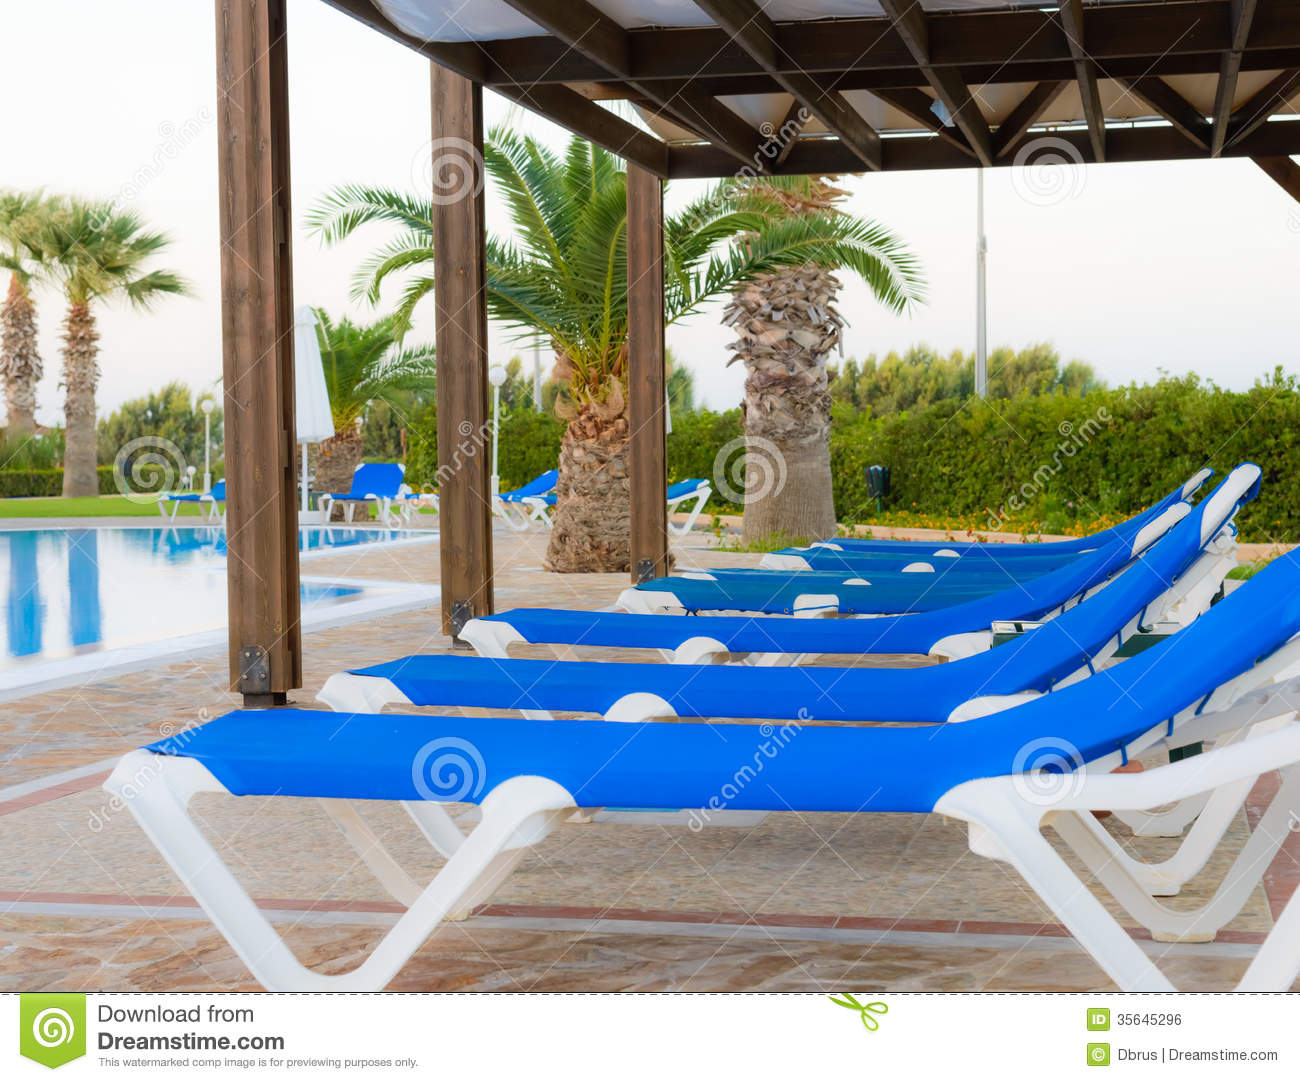 Deck chairs under a canopy stand near the swimming pool.